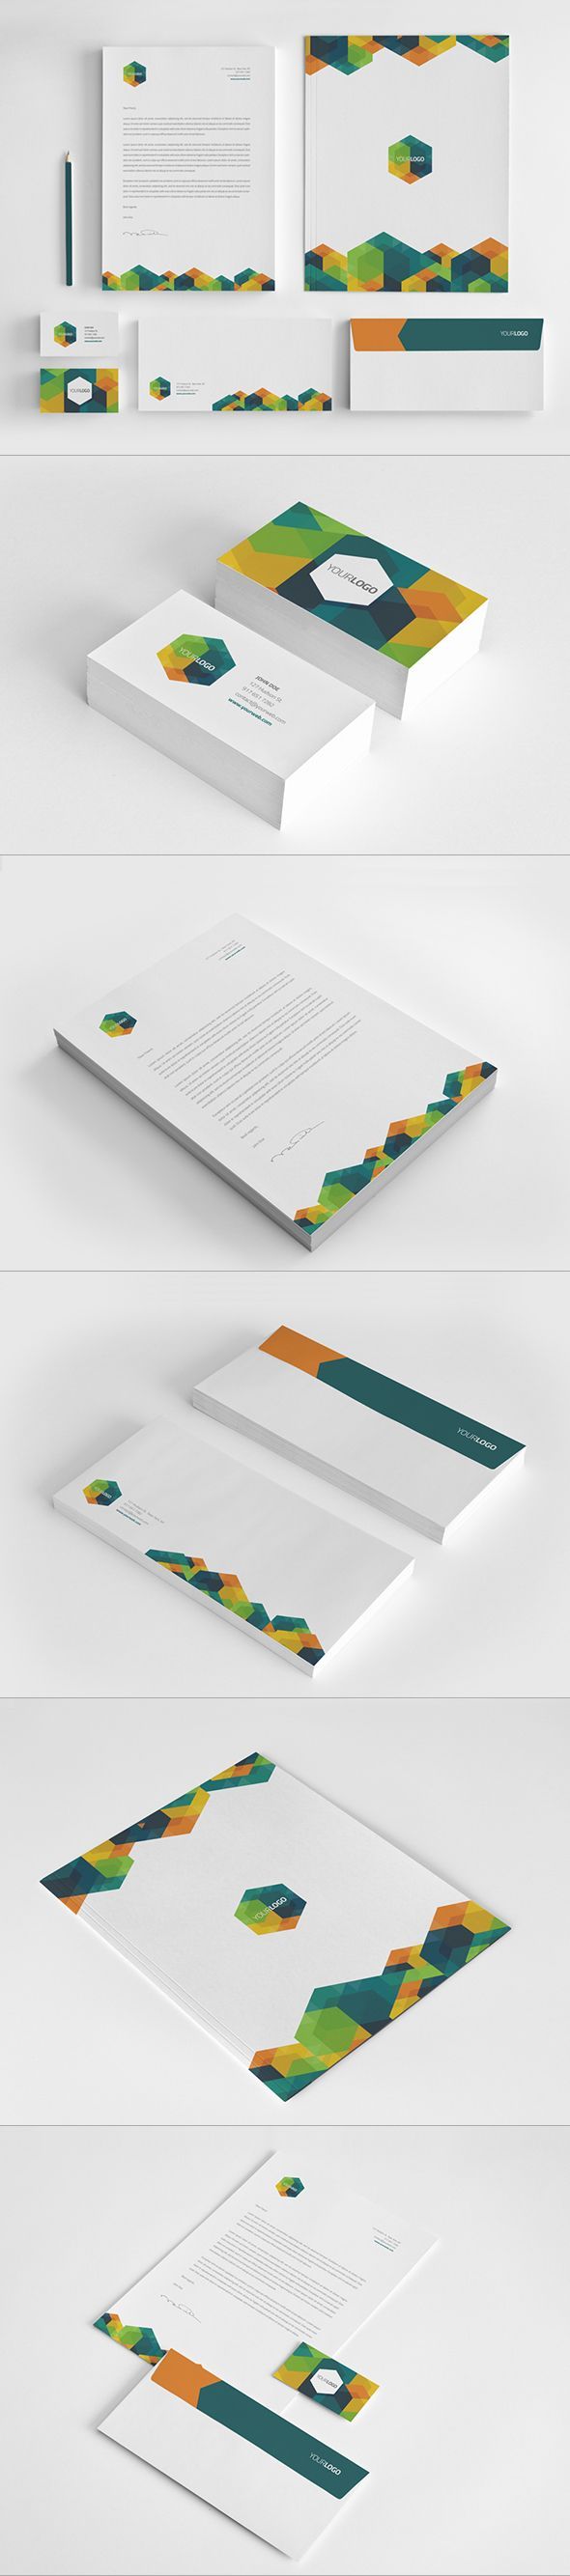 Hexo Stationary Design by Abra Design, via Behance